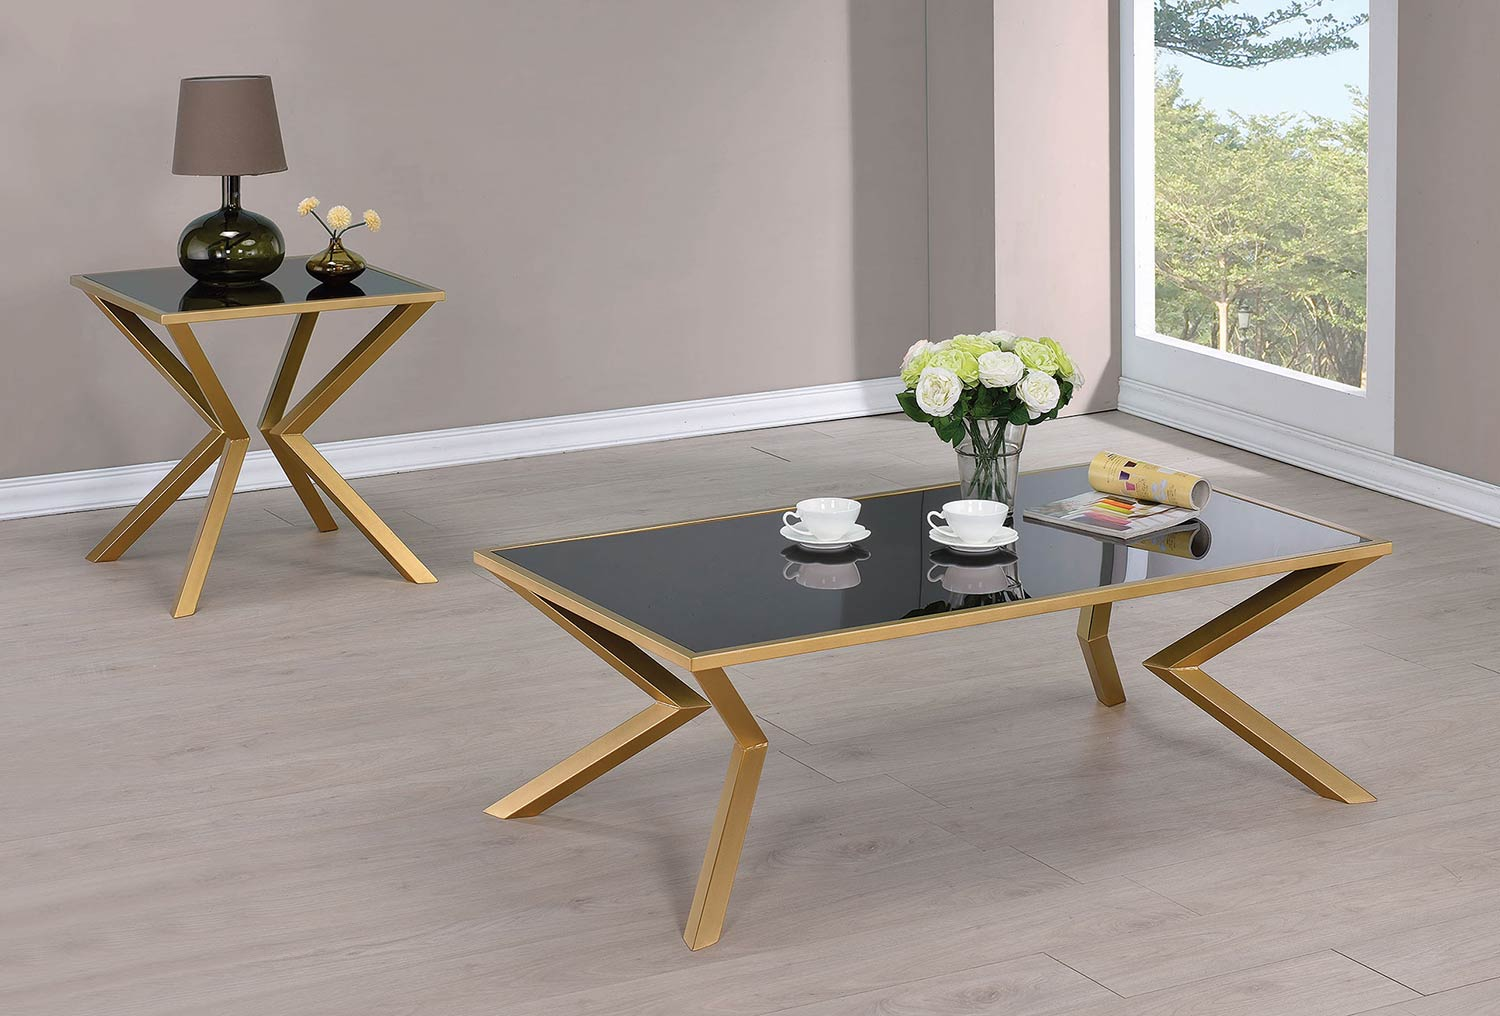 Coaster 705188 Occasional/Coffee Table Set - Black Glass/Brushed ...